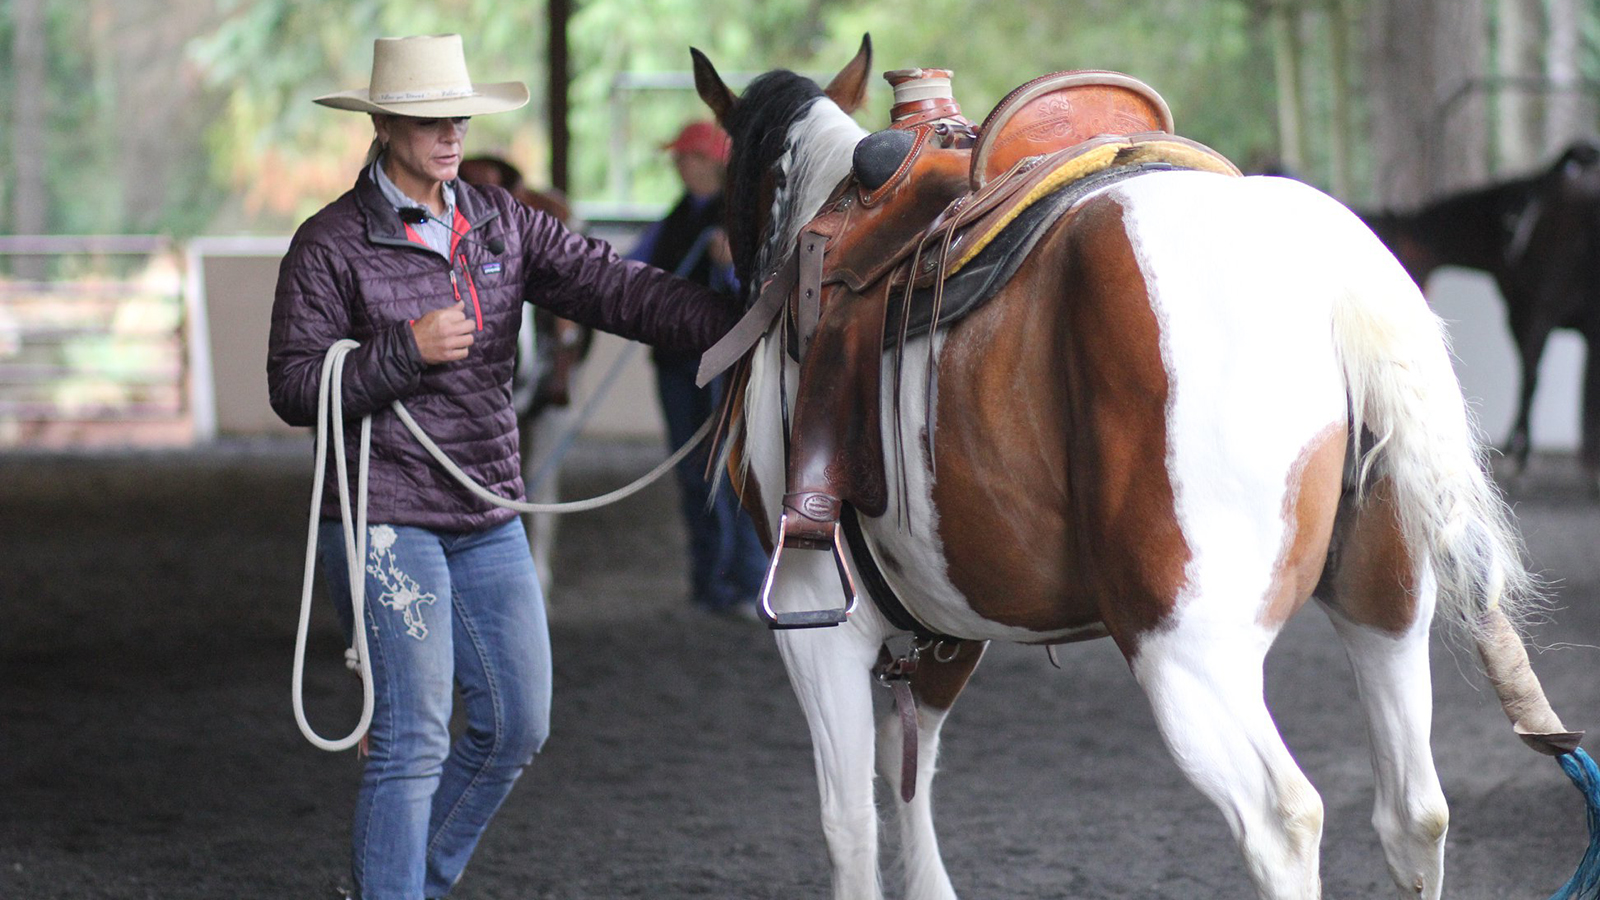 Rancher and clinician Trina Morris shares a tip for orally medicating horses.